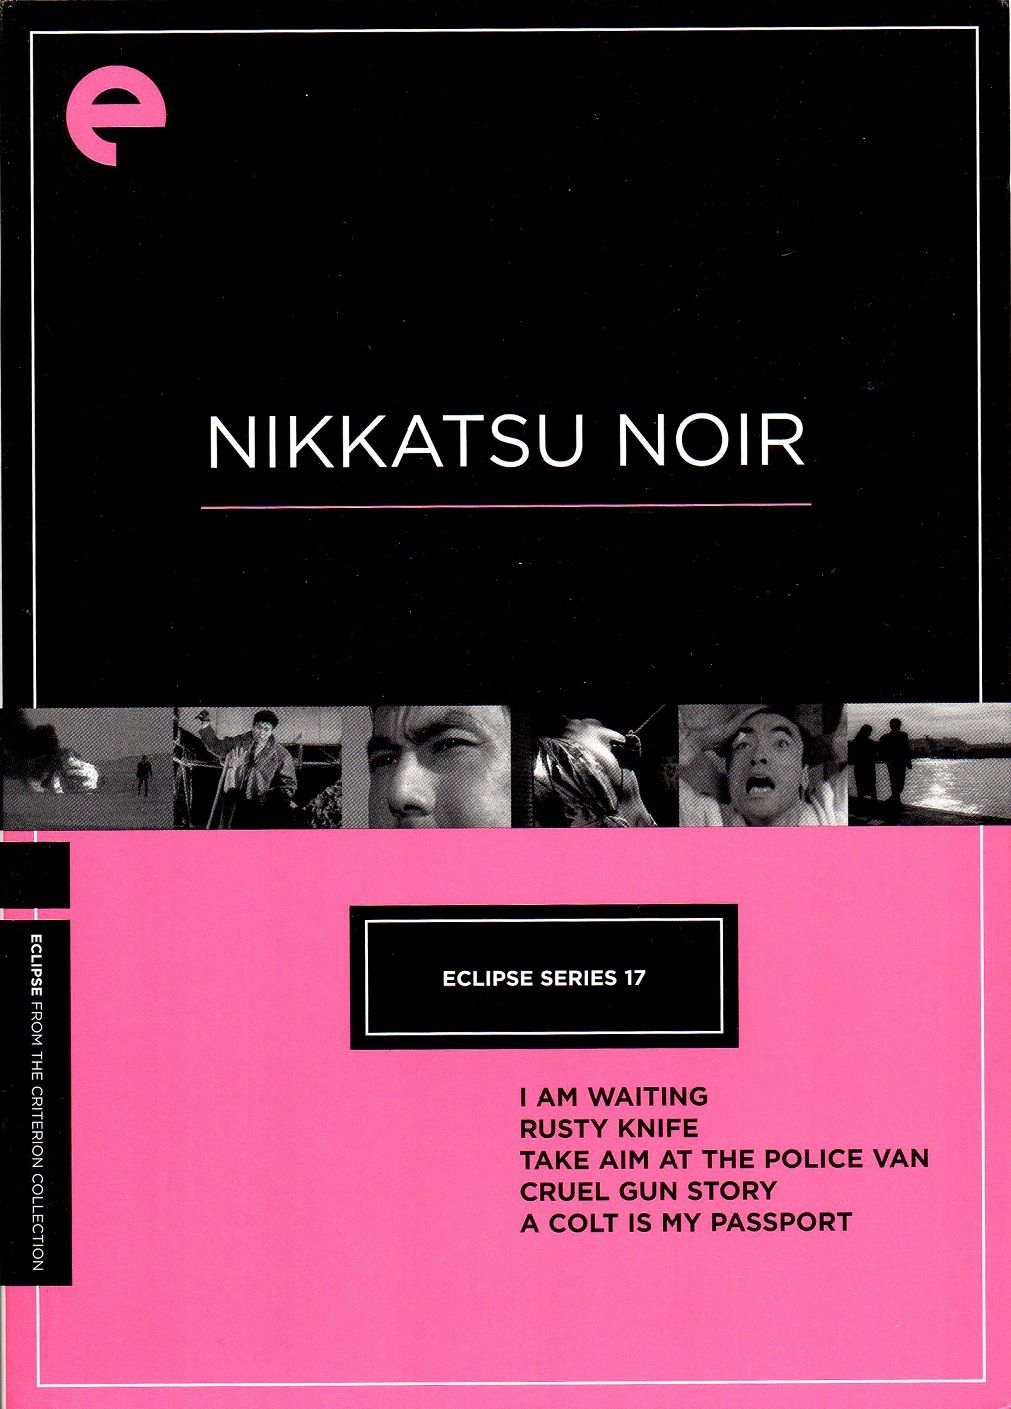 Five Noir Films Collected For This Boxset From Criterion Japanese Language With English Subtitles The Way I Like To Watch These